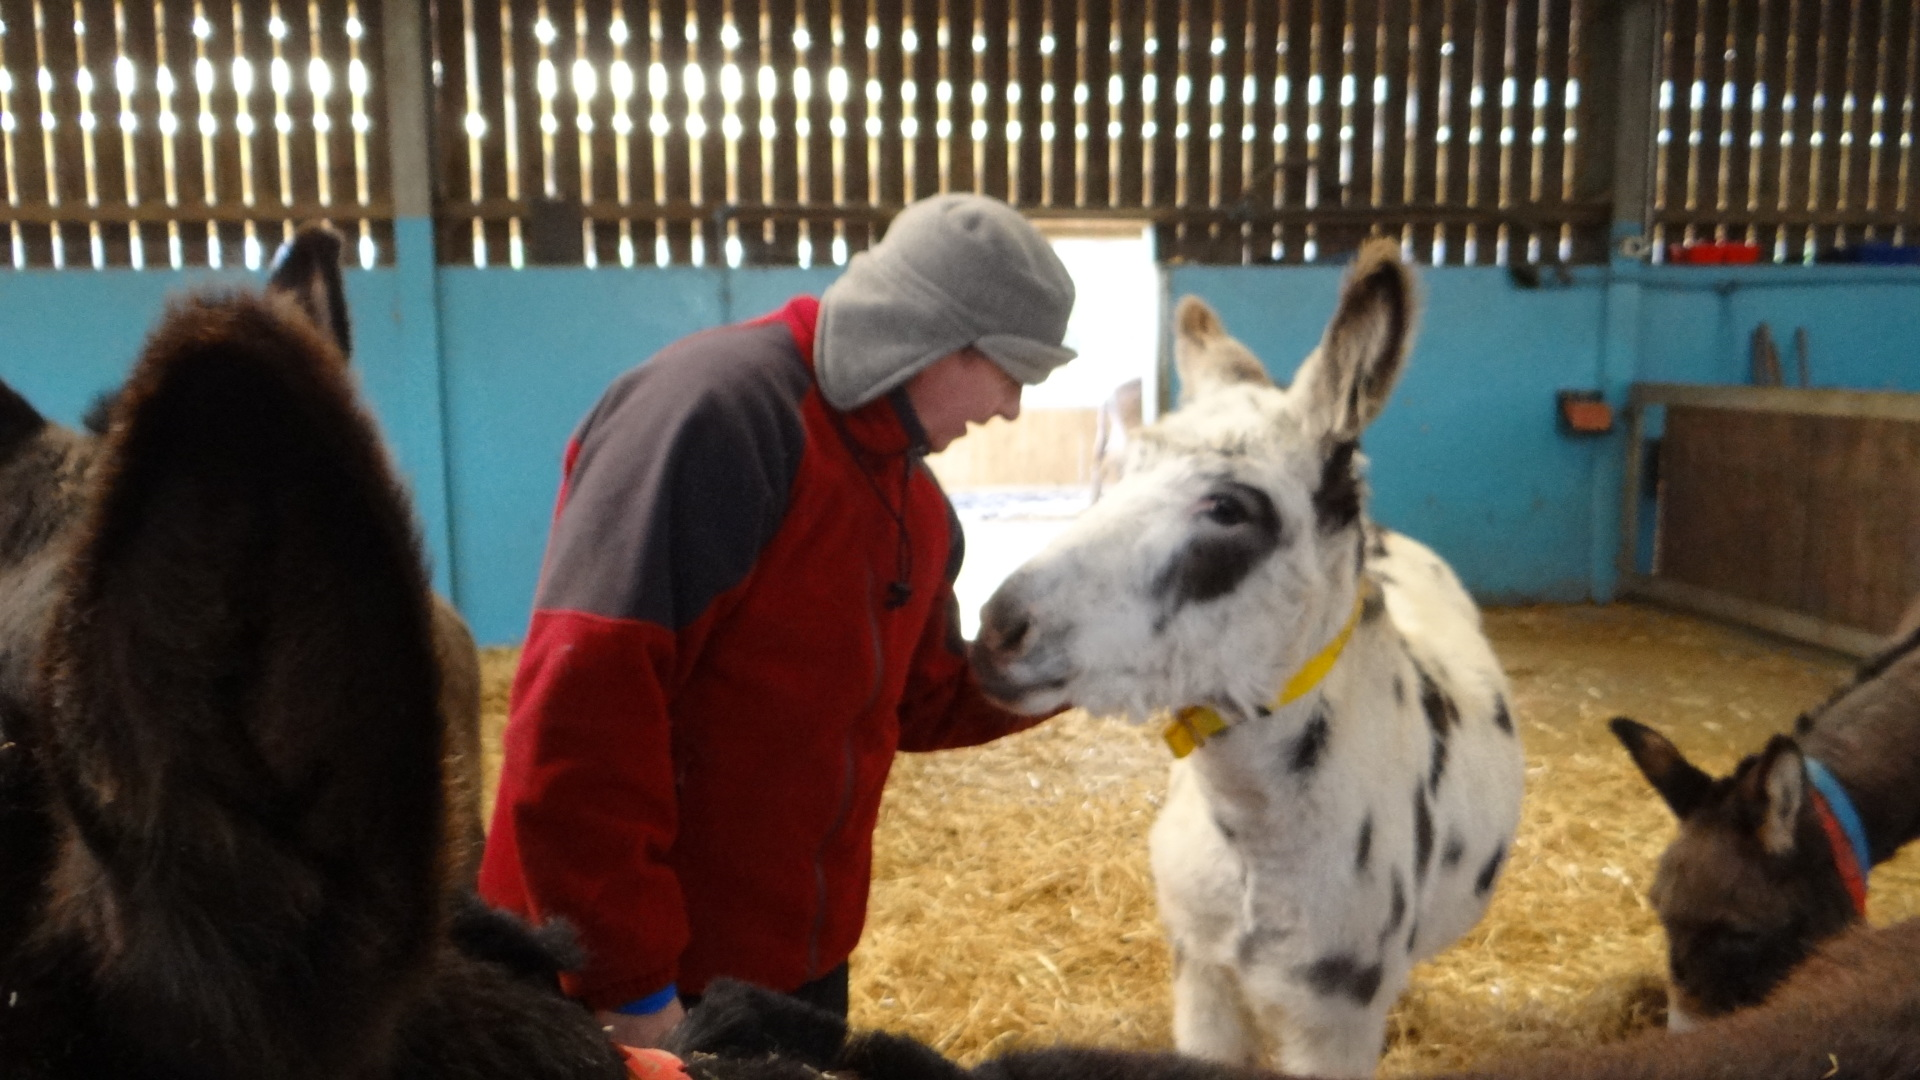 Donkey Care work experience at The Donkey Sanctuary Charity, Sidmouth, Devon